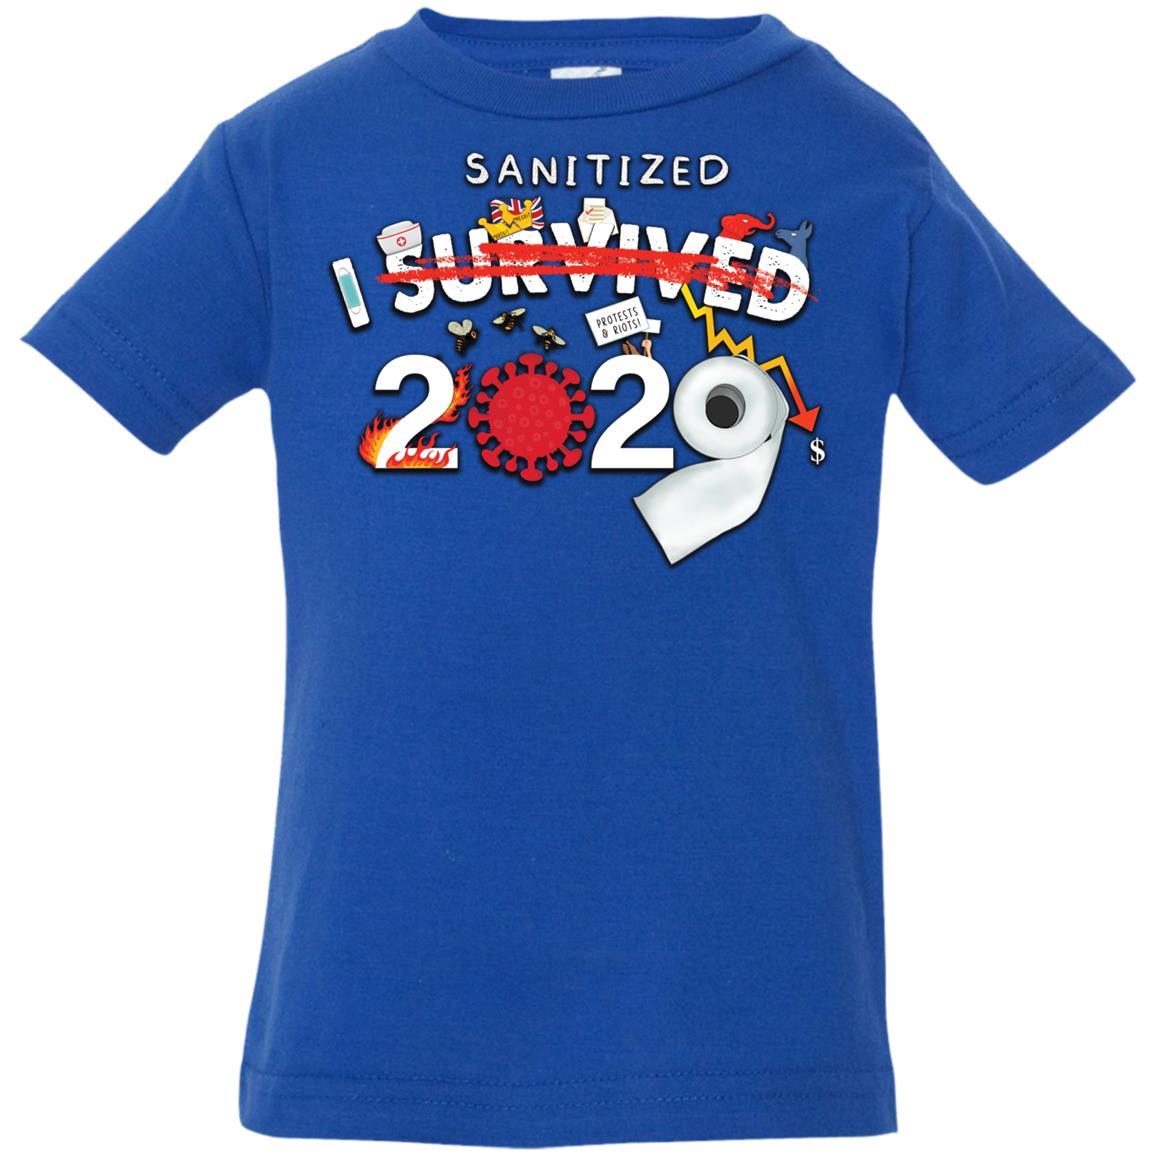 I Sanitized 2020 - Infant Jersey T-Shirt